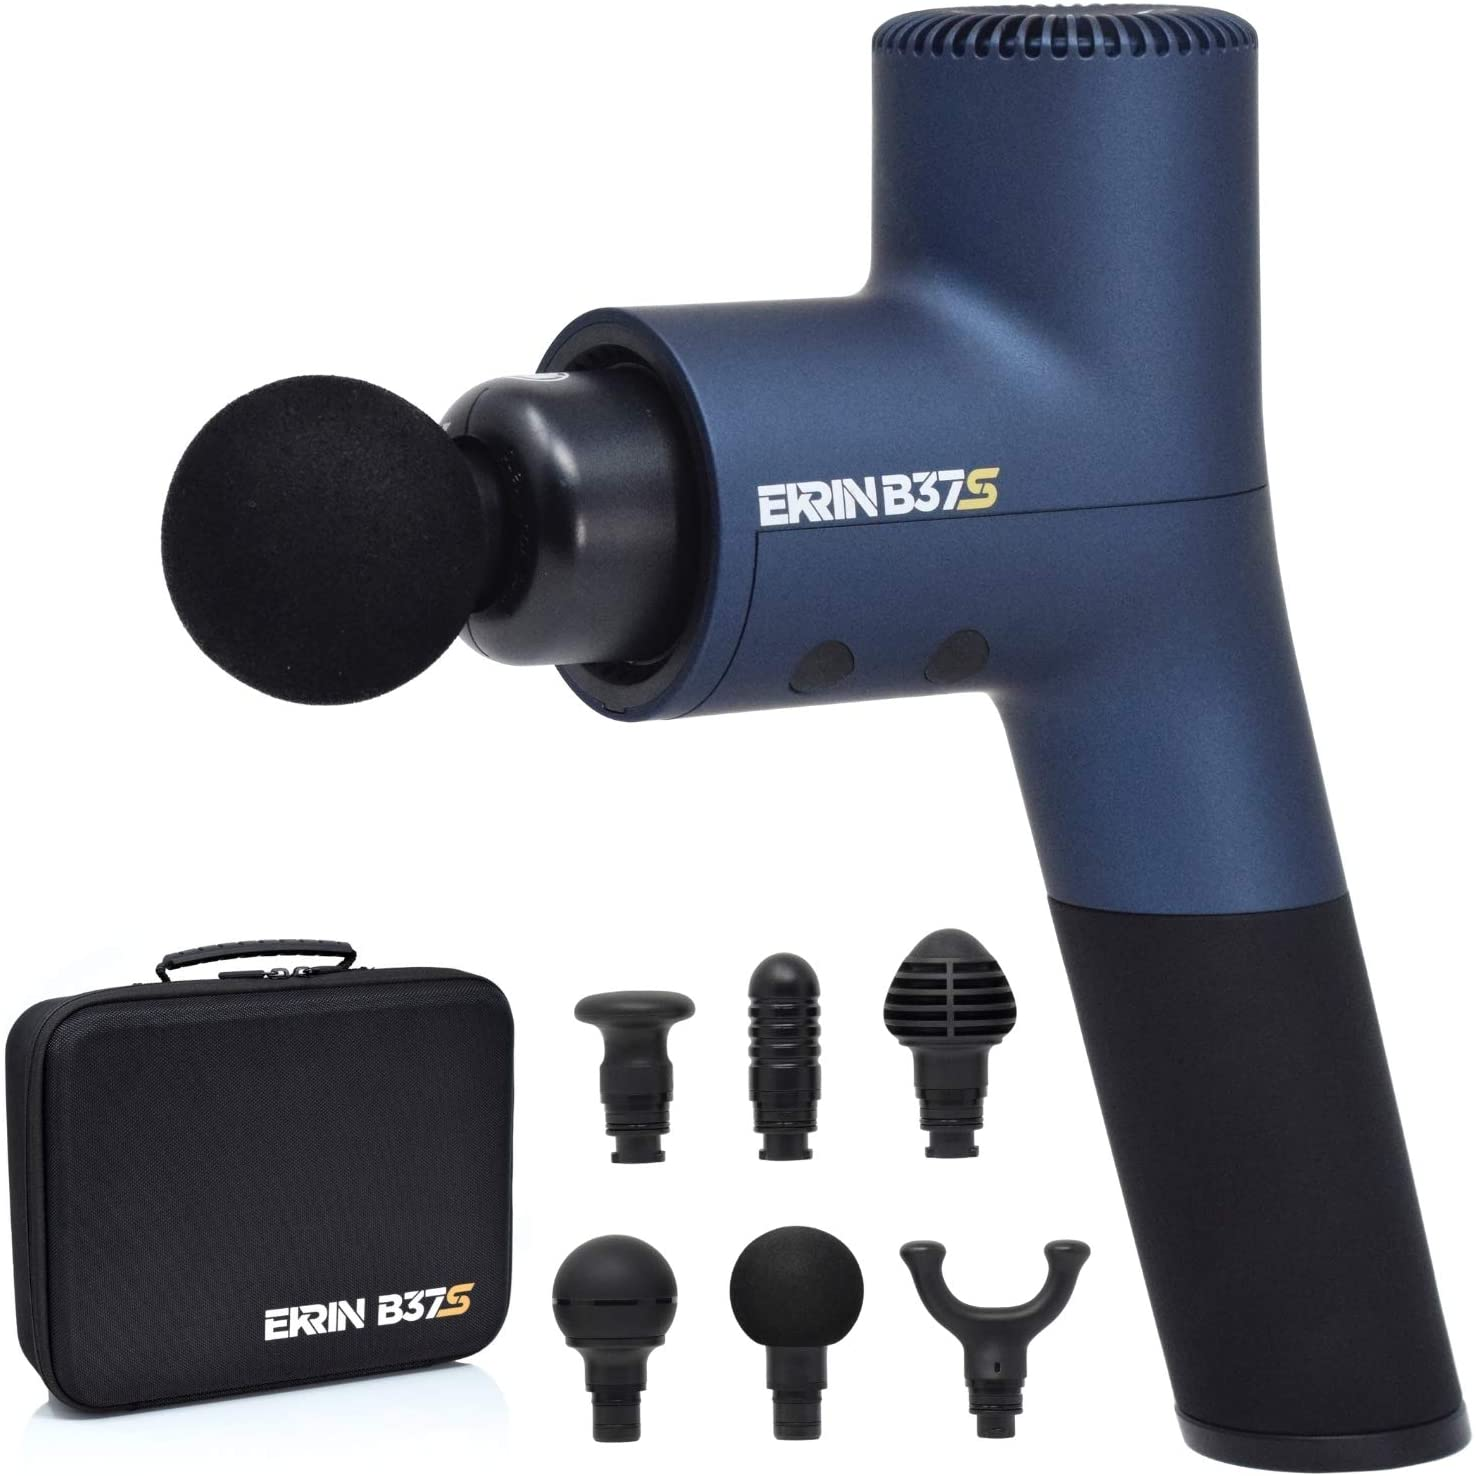 Ekrin Now free shipping Athletics B37S Massage Gun for Sales for sale - Percussion Massager Sore